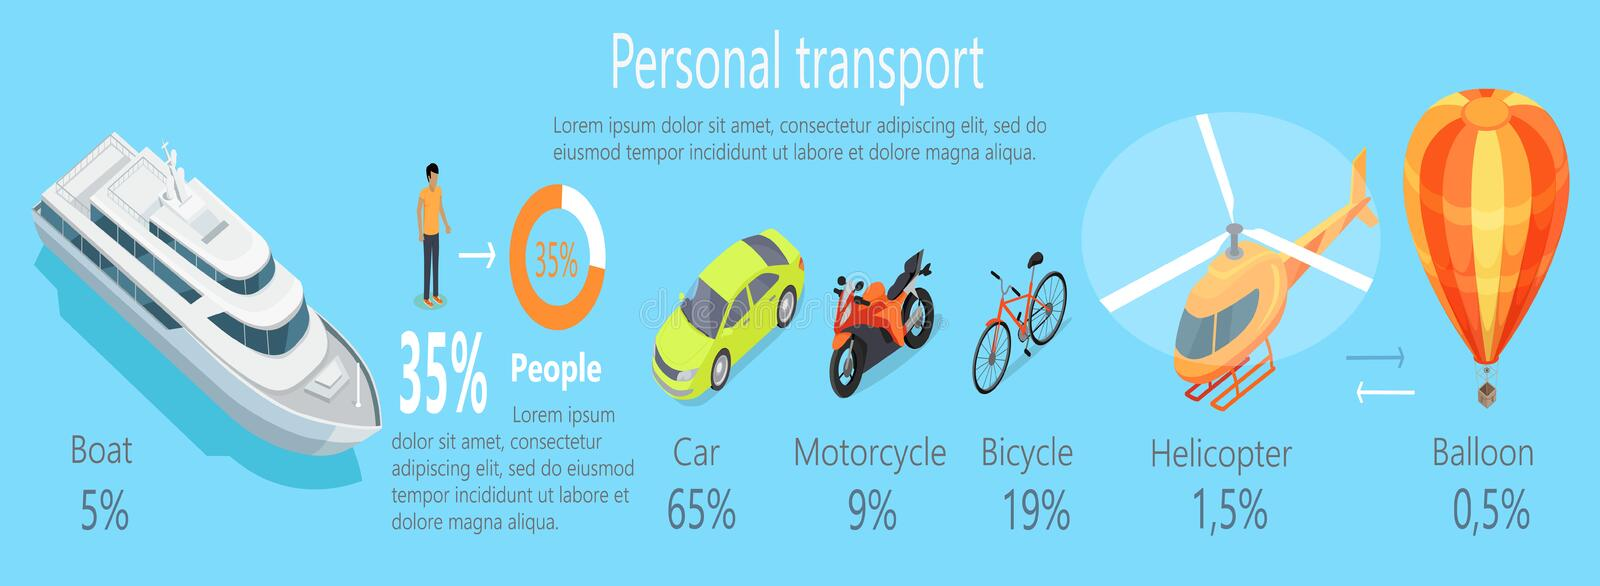 Personal Transport Infographic Statistics of Usage. Personal transport infographic. Boat. Car. Motorcycle. Bicycle. Helicopter. Balloon. Statistics of transport vector illustration